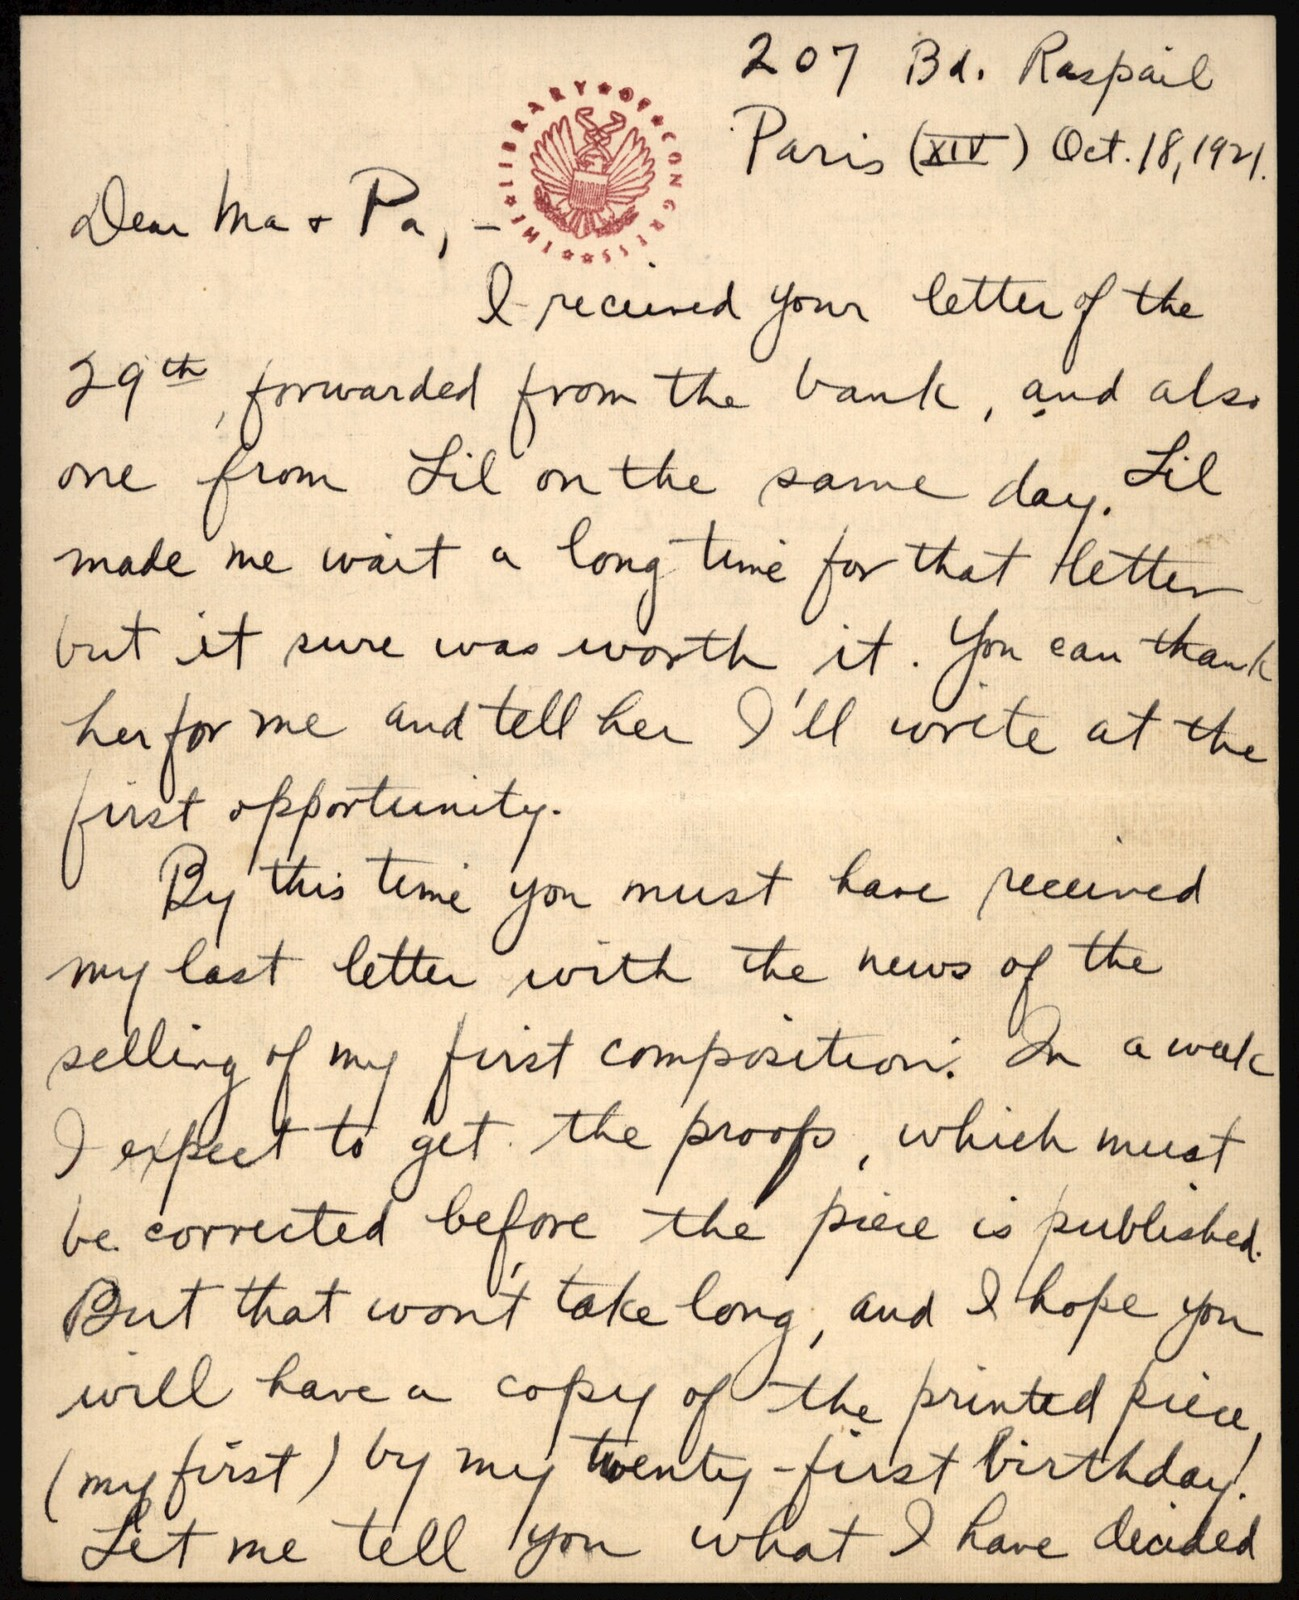 Letter from Aaron Copland to his family, October 18, 1921.